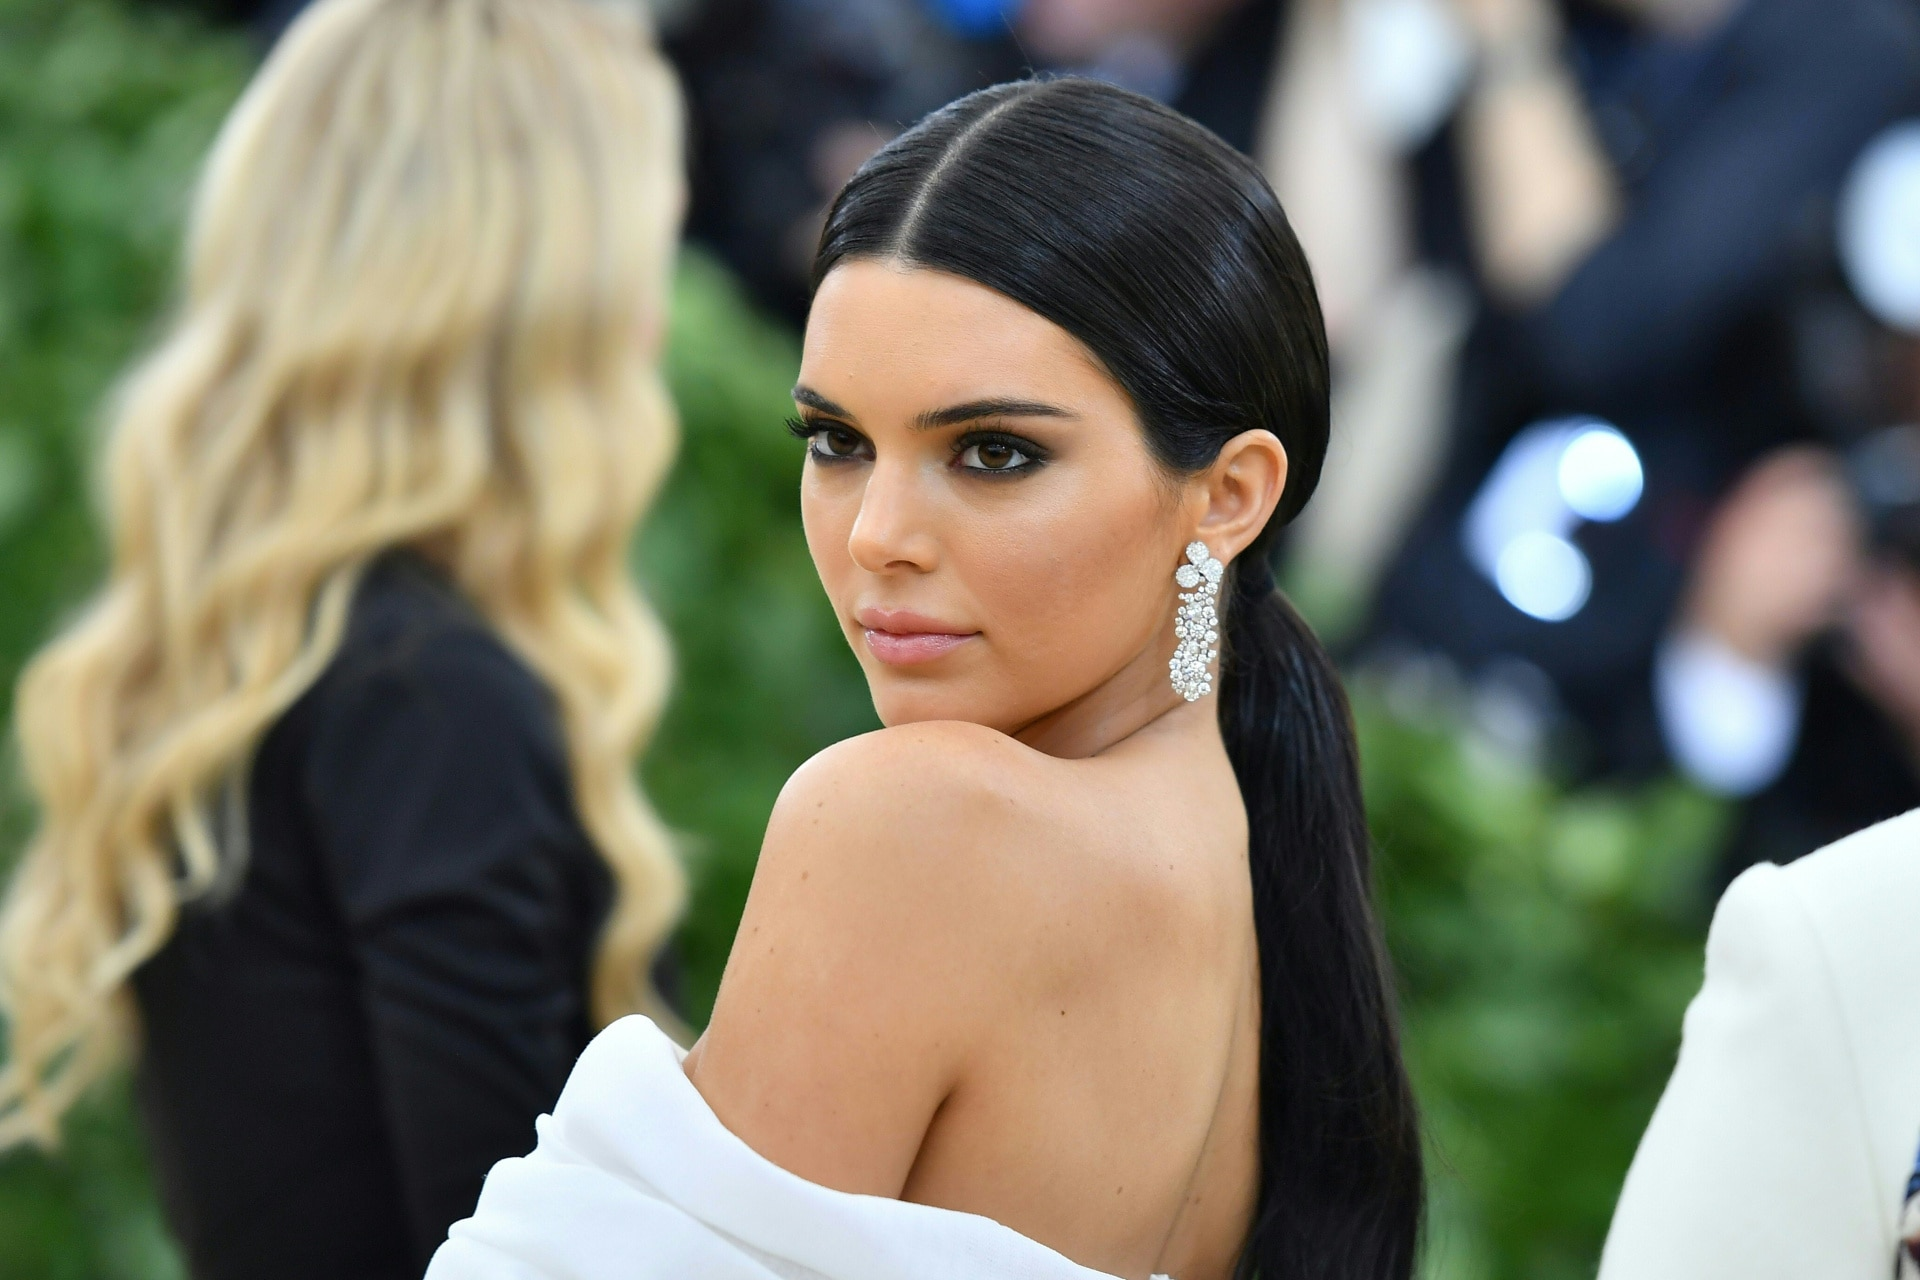 Kendall Jenner shooed away Kris Jenner for trying to fix her Met Gala outfit on the red carpet